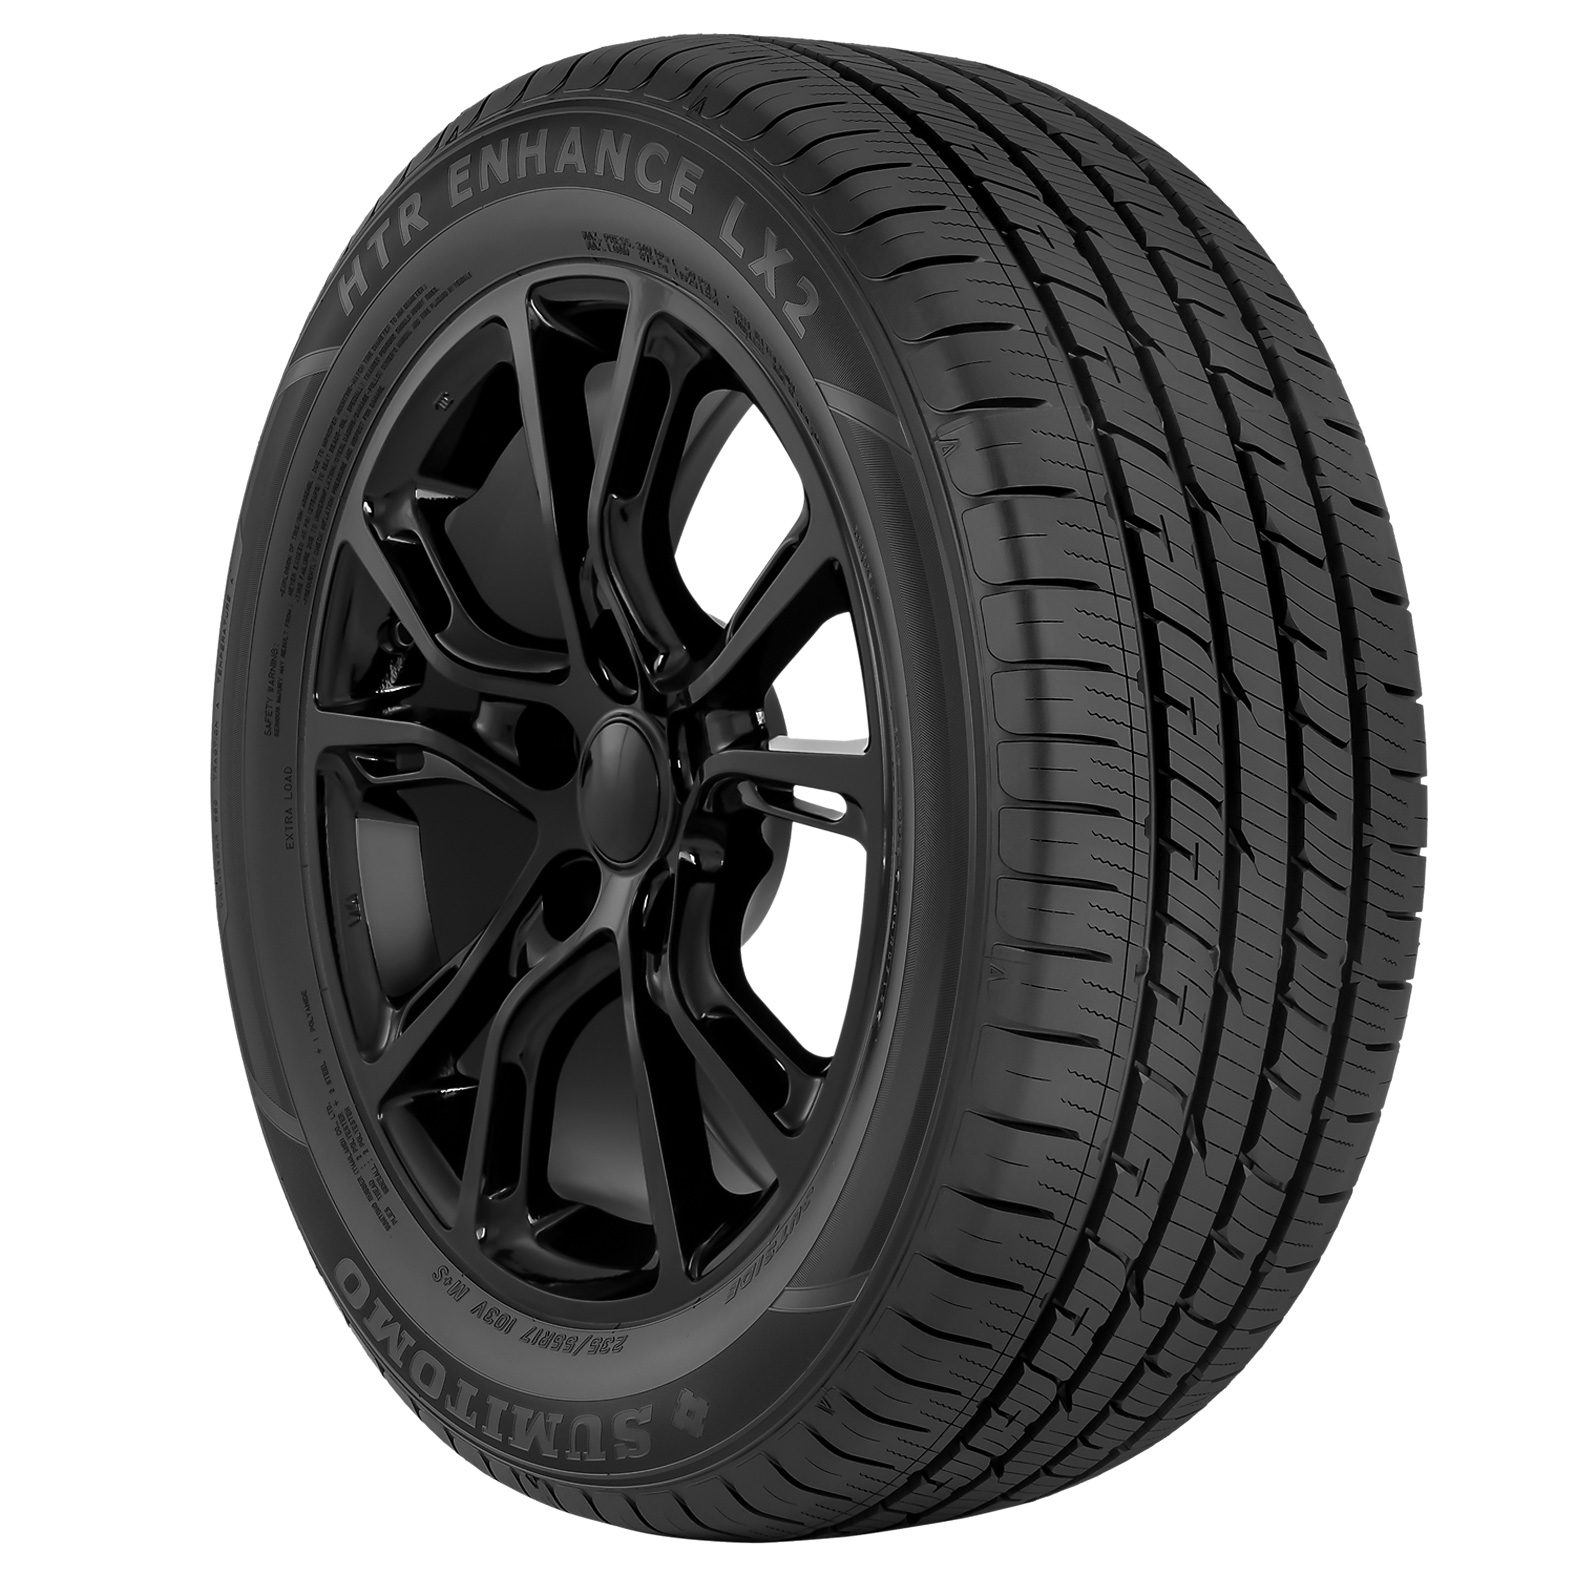 Sumitomo HTR Enhance LX2 tire – angle